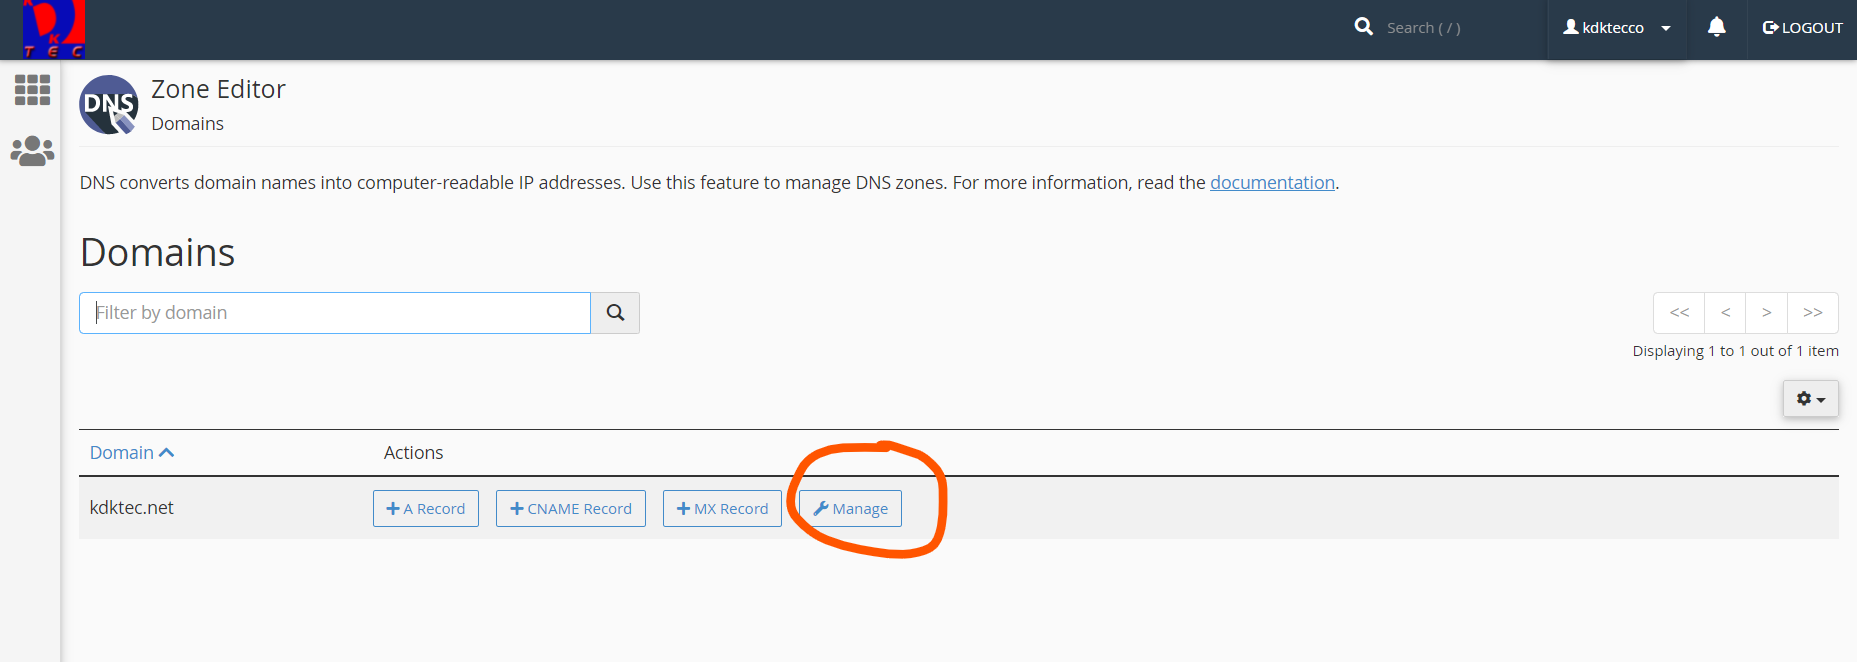 DNS Zone Editor primary domain manage feature